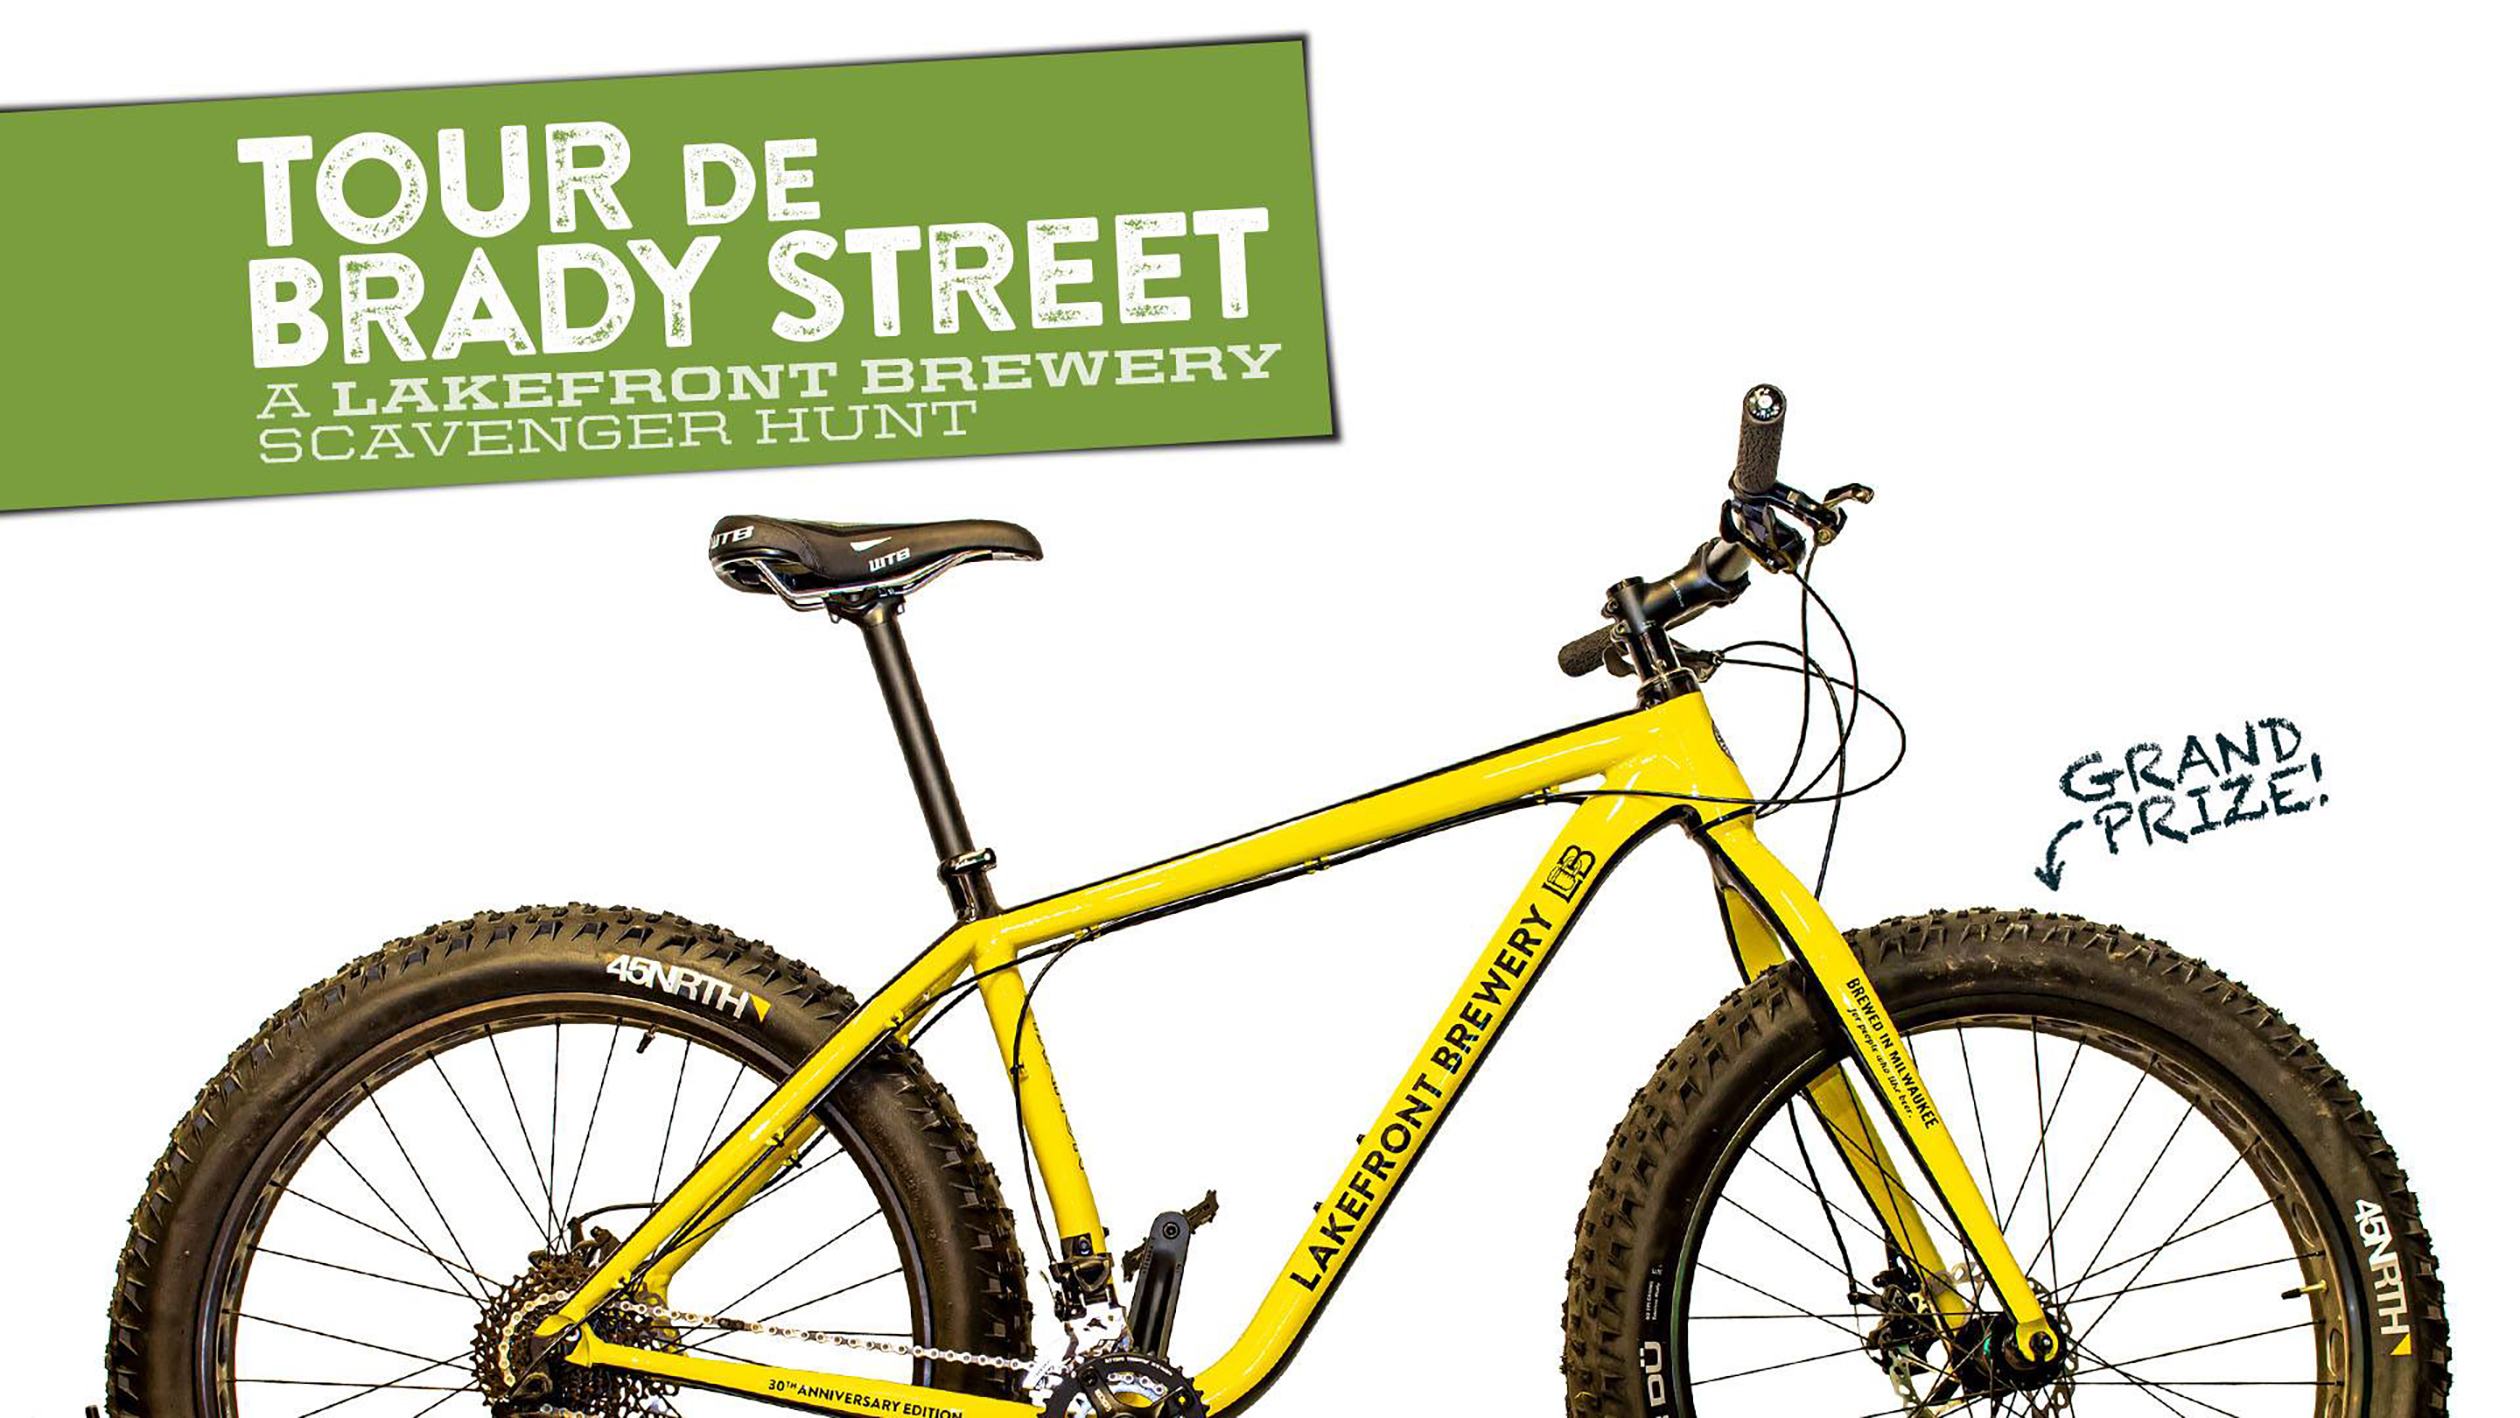 Lakefront Brewery Announces Tour De Brady Street with Prizes